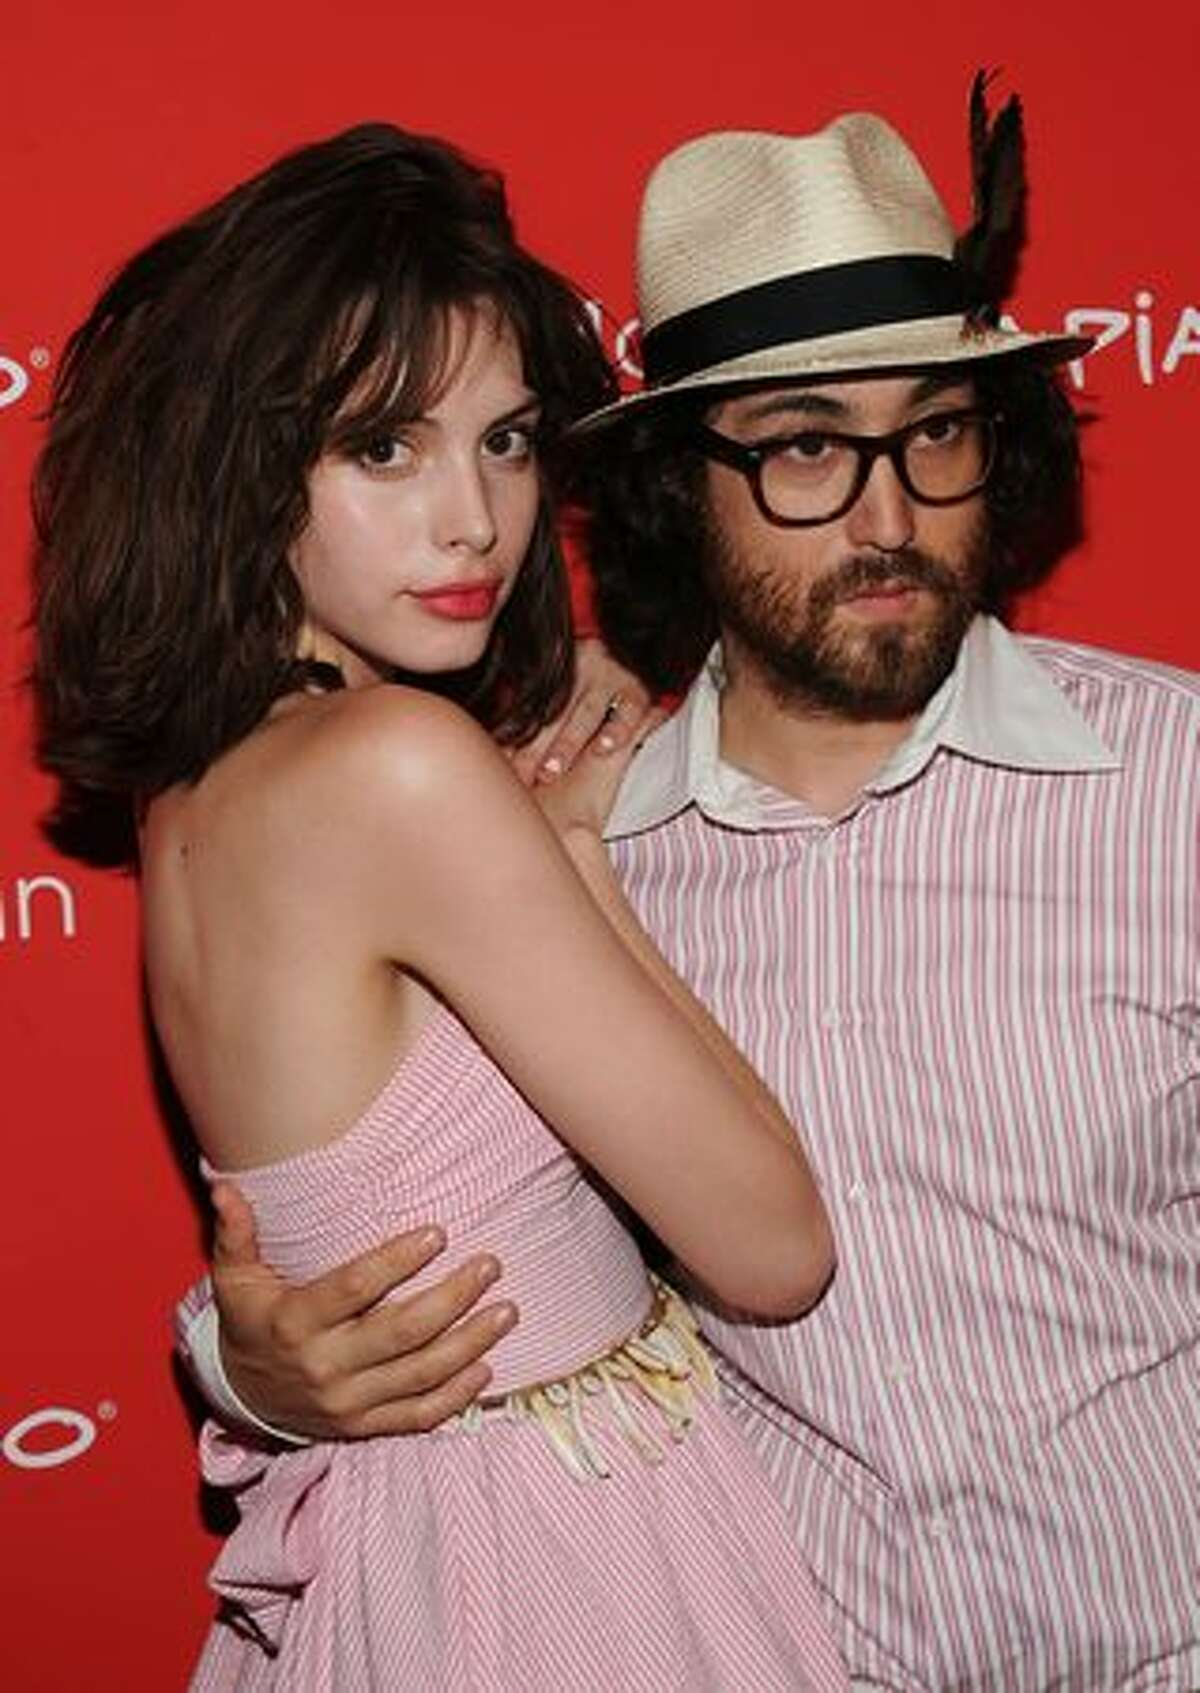 Musician Sean Lennon (R) and Charlotte Kemp Muhl attend the premiere of